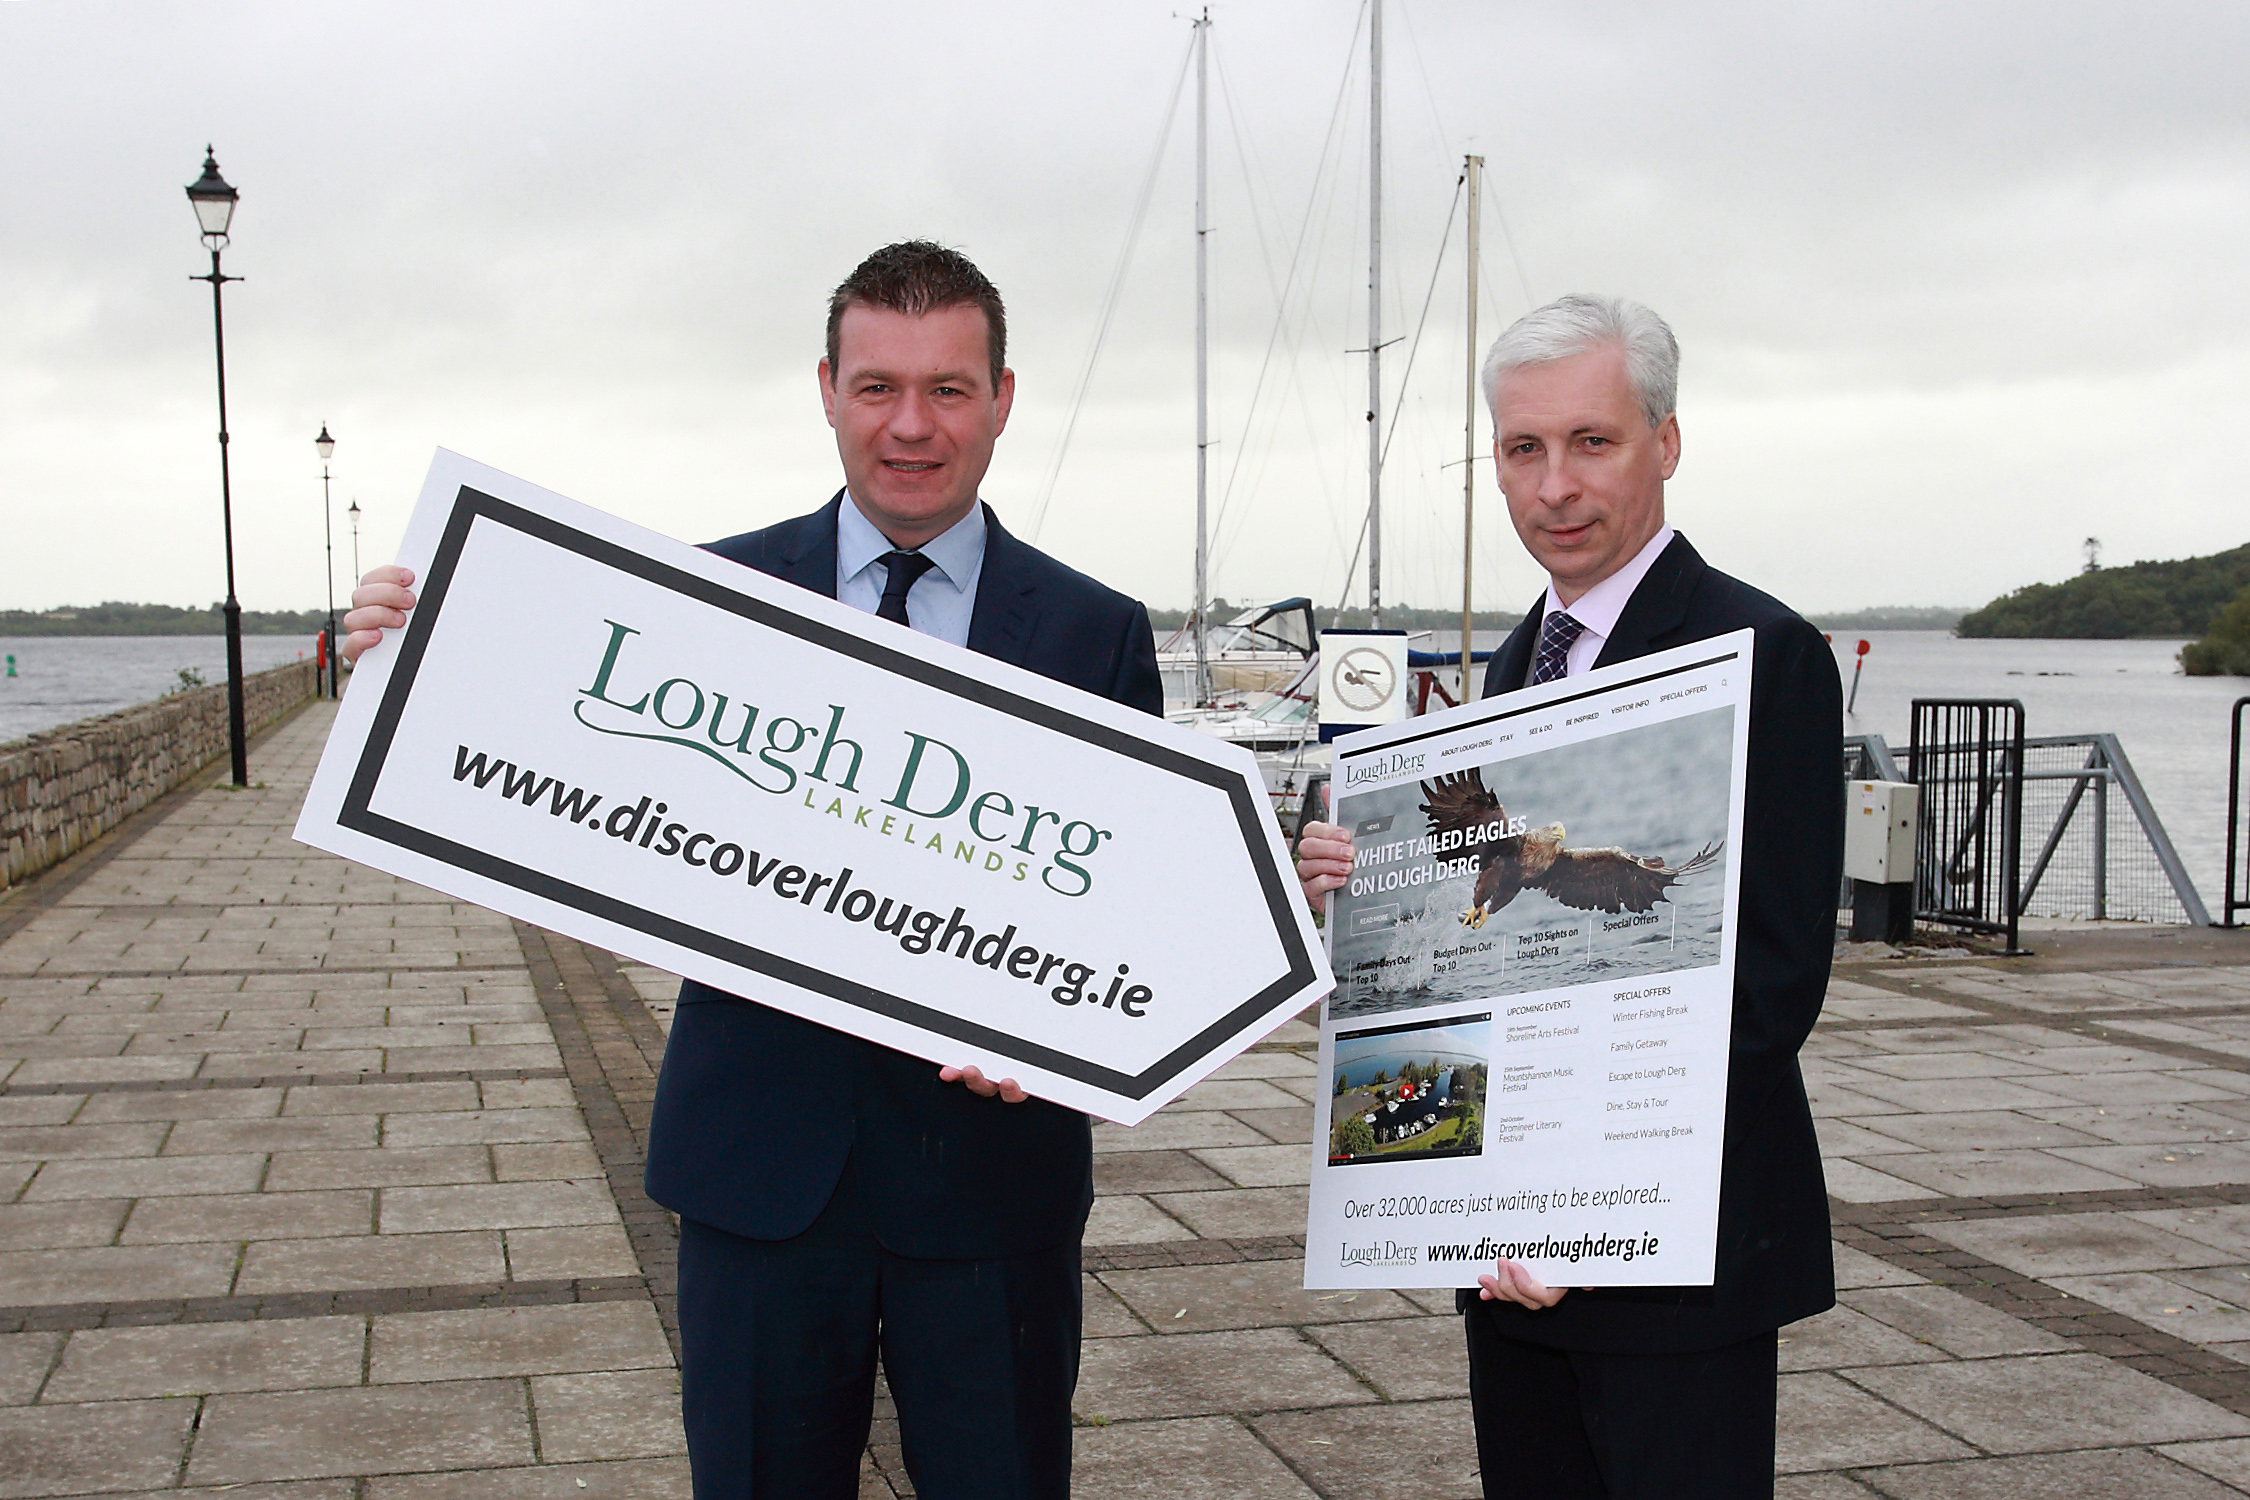 Minister for the Environment, Community and Local Government Mr. Alan Kelly TD today (Monday, 8 September 2014) launched a brand new website dedicated exclusively to the promotion of the Lakelands Lough Derg region. www.discoverloughderg.ie provides visitors to the region with information on places to visit, events, accommodation providers and restaurants, special offers, and land and water based activities. Pictured at the launch in Garrykennedy on the shores of Lough Derg (L-R) Minister Alan Kelly - Minister for the Environment, Community and Local Government; and Joe MacGrath – Chief Executive Tipperary County Council. Photographer: Tom Doherty)